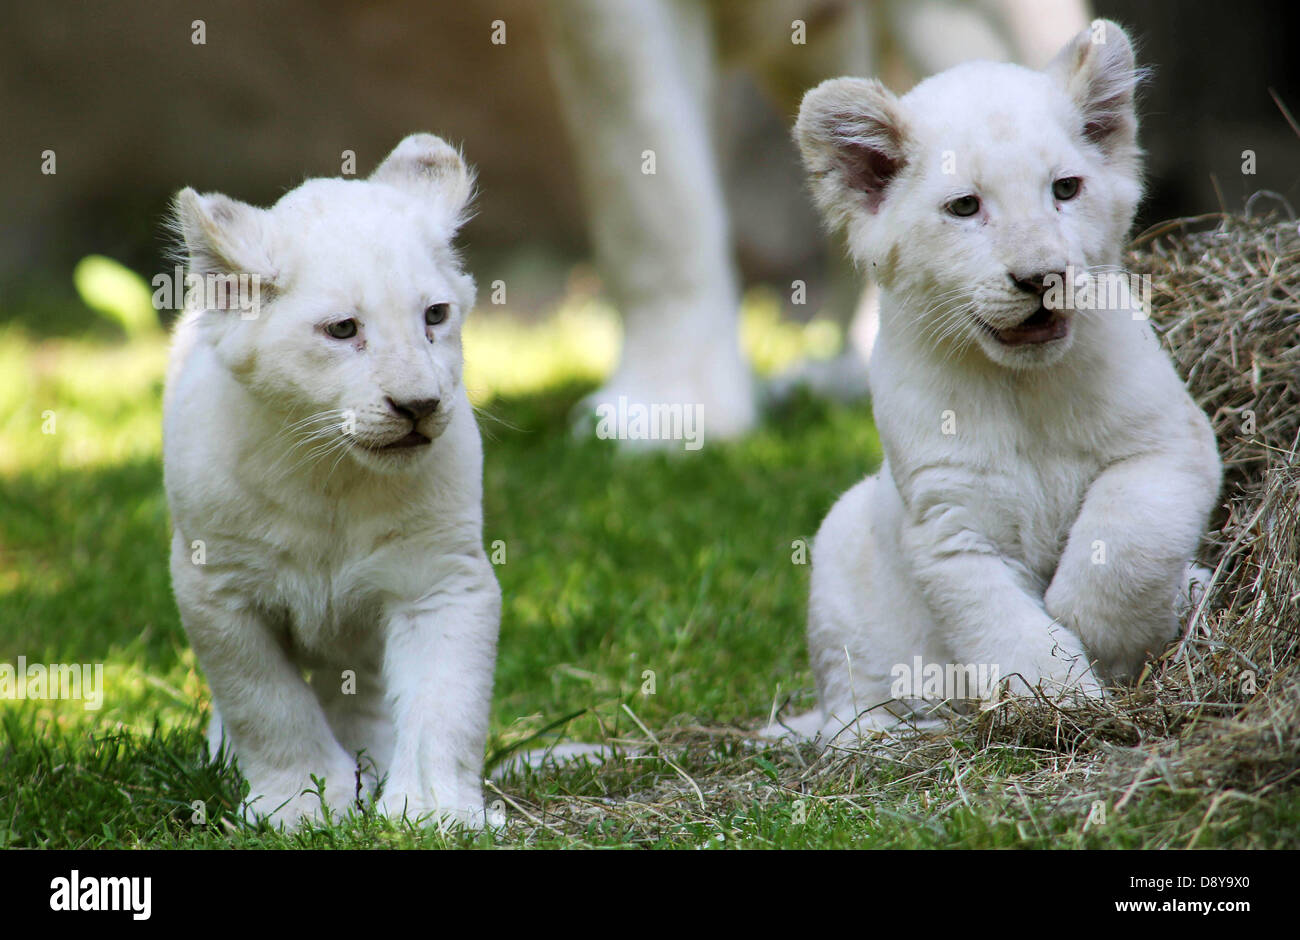 """Rhenen, The Netherlands. 06 June 2013. African white lions """"Inkosi"""" and """"Ilumbo"""" pose at Ouwehand Zoo in  Rhenen, 06 June 2013. The rare African white lions were born on 06 March 2013.  The past months the youngsters and their mother Bandhura kept behind the scenes and were not visibly for the public. Ouwehand Zoo offered the rare white cubs to the new Dutch royal couple. Ouwehand got this idea because the little lions are a male and a female, and this is popularly known as a """"royal couple"""". Photo: VidiPhoto/dpa/Alamy Live News Stock Photo"""